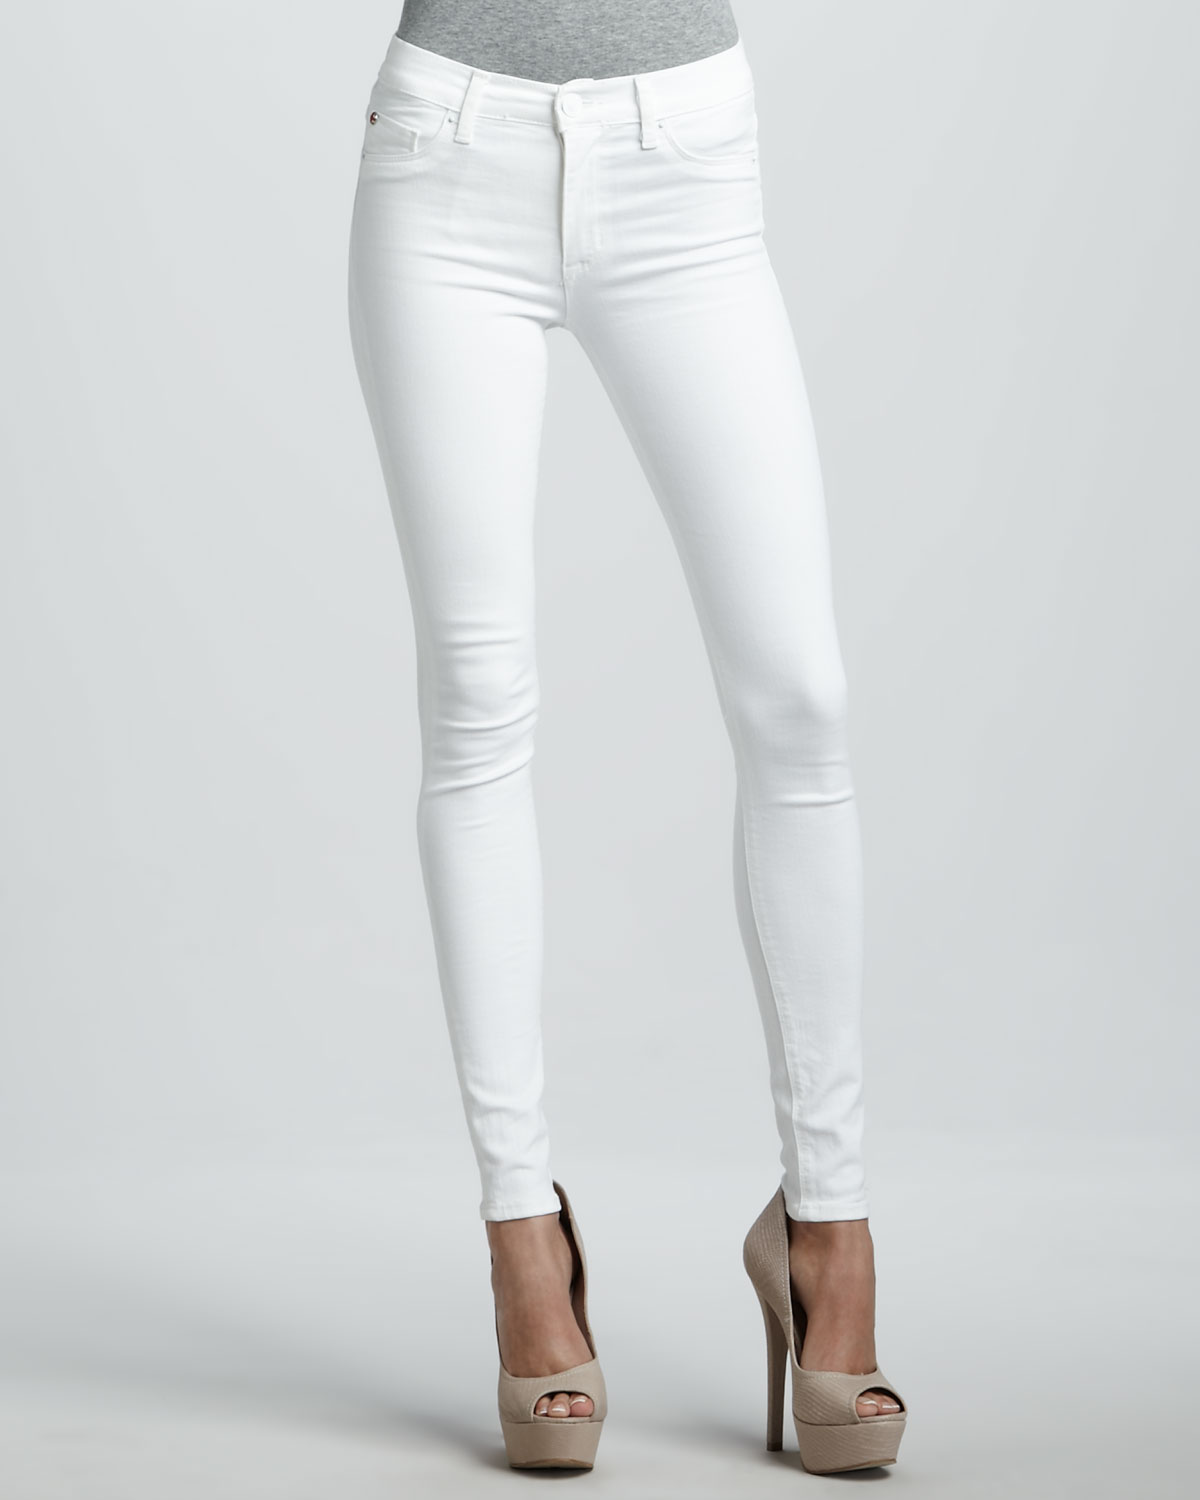 Juniors white skinny jeans bbg clothing for White pants denim shirt